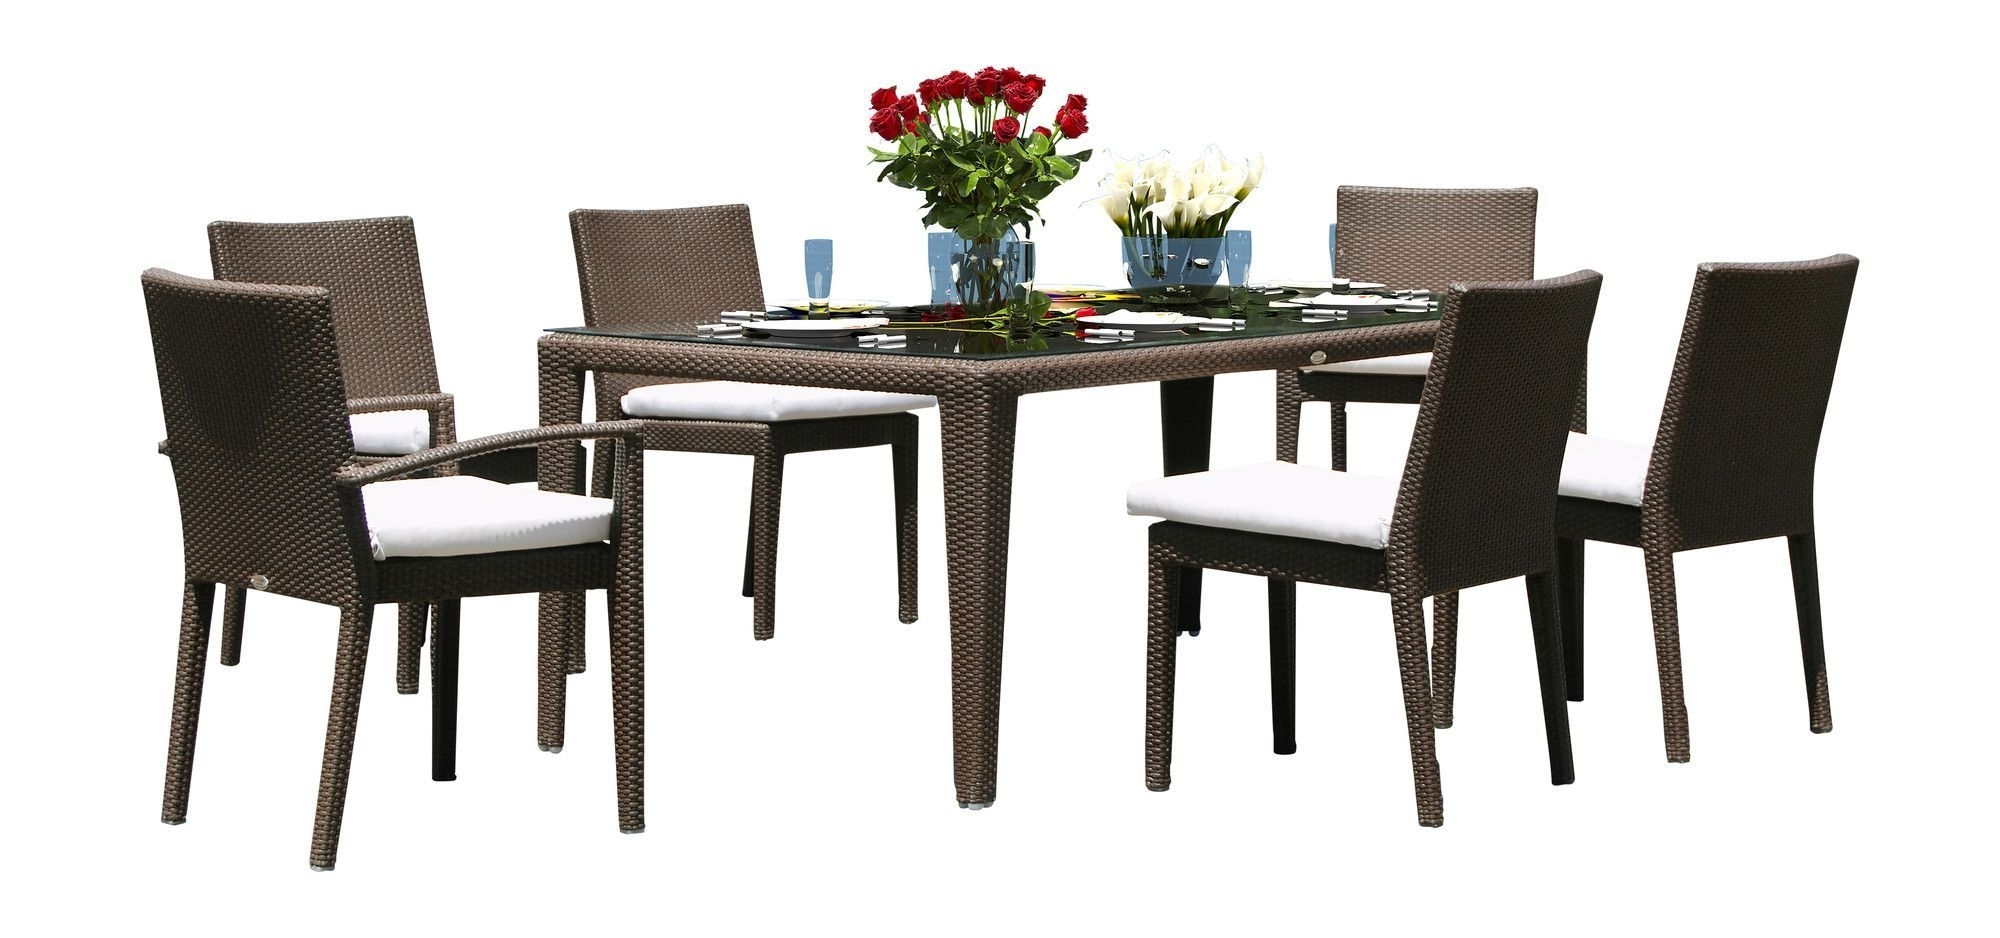 Outdoor Products And Products Pertaining To Chapleau Ii 7 Piece Extension Dining Tables With Side Chairs (View 6 of 25)